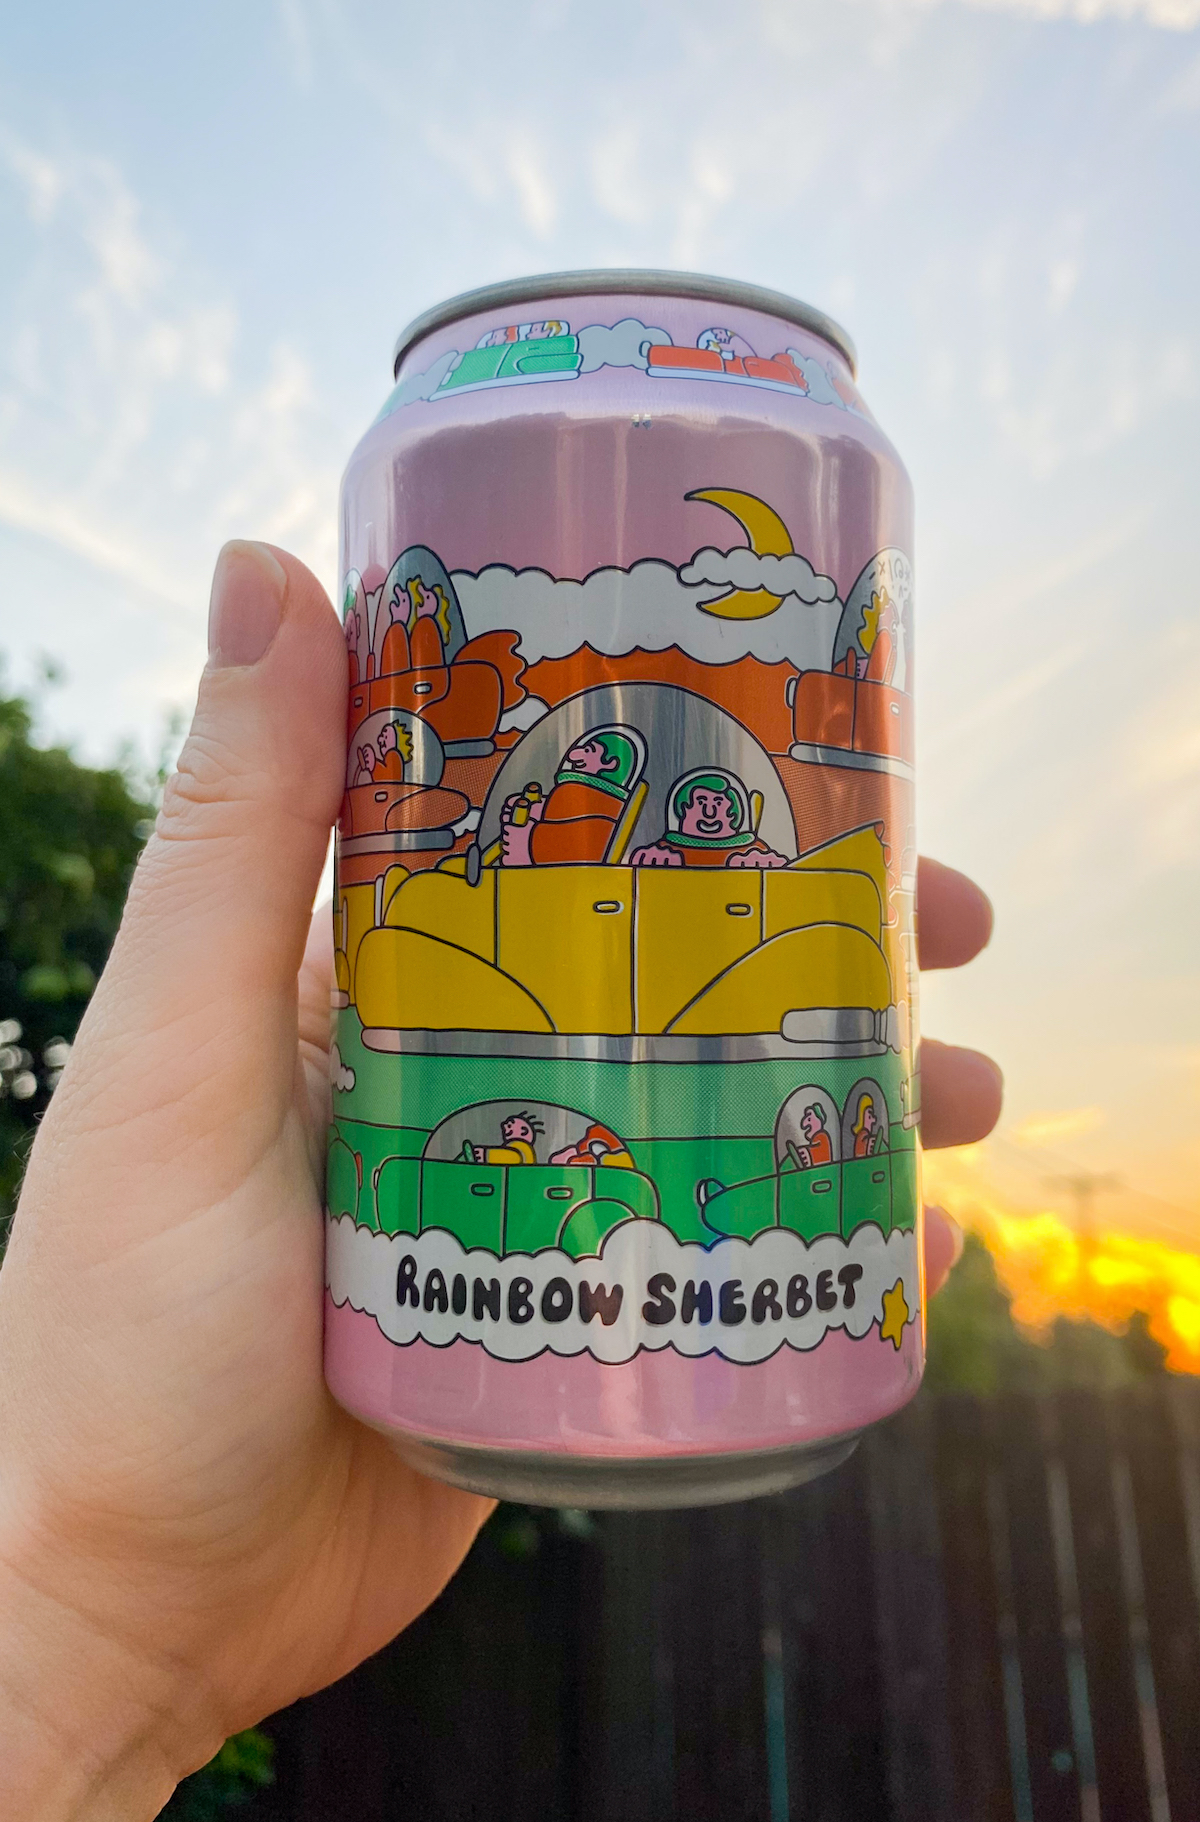 A hand holds a colorful can of rainbow sherbet beer against a sky and sunset background.